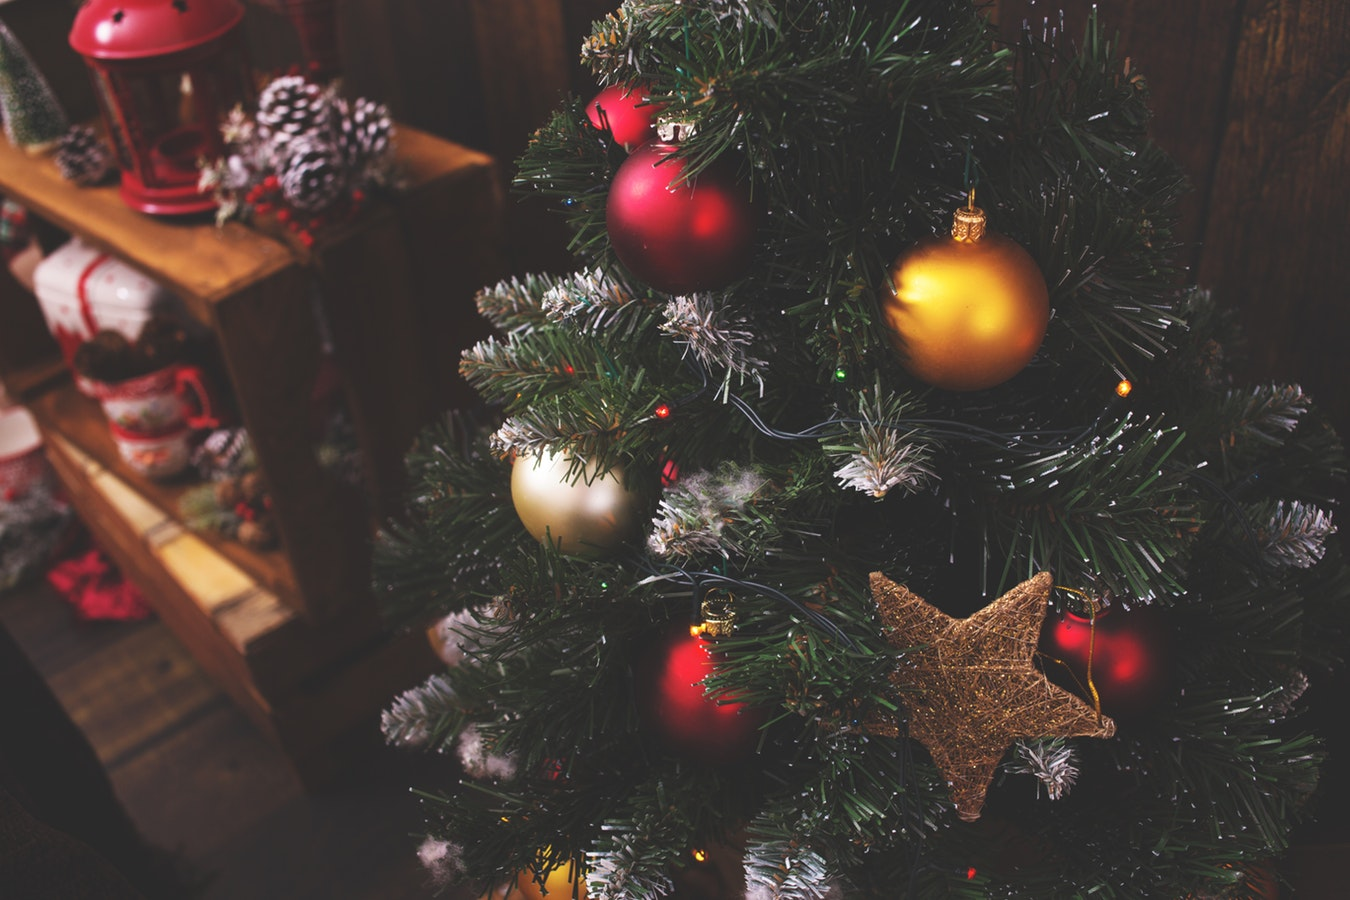 Storing your Christmas decorations